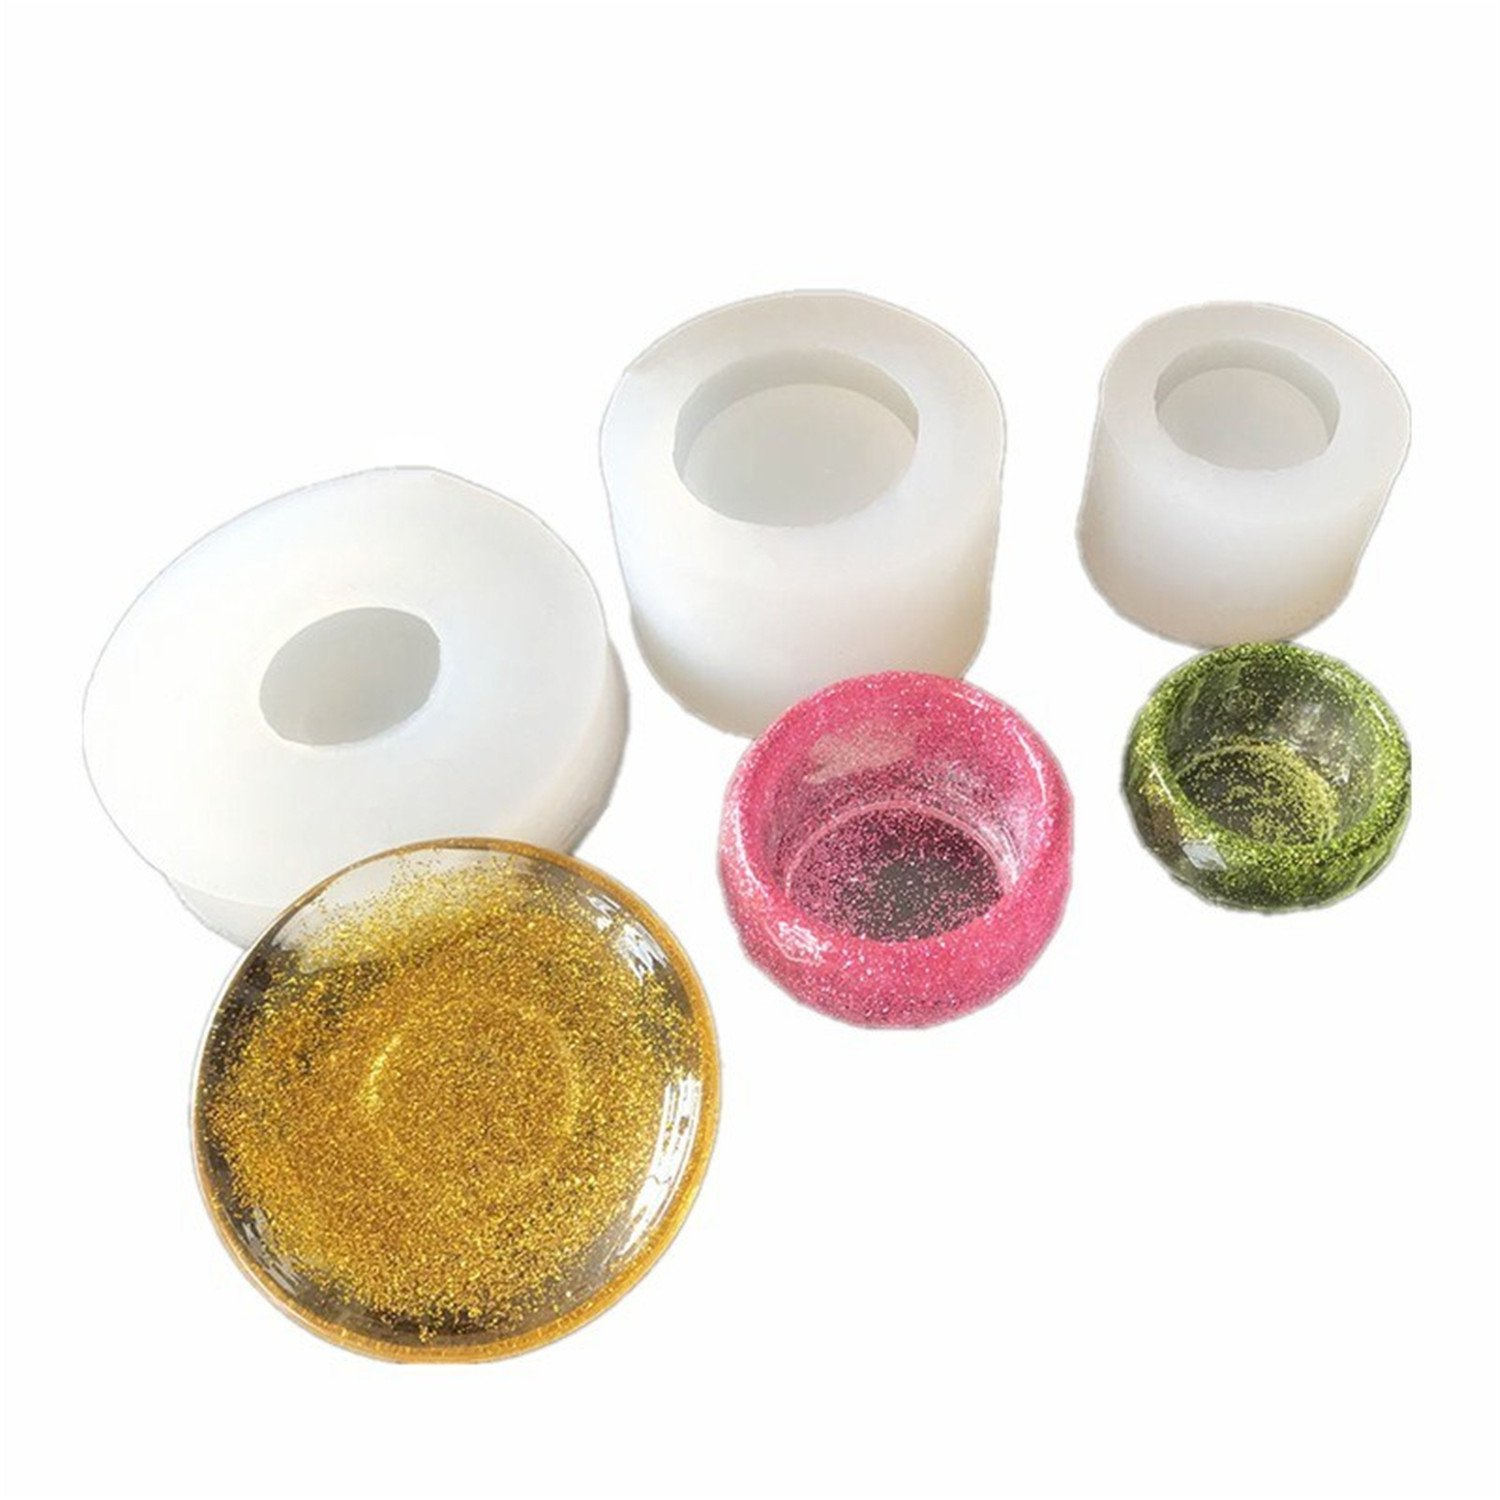 3 pcs/set Epoxy Resin Molds,Small Dish,Big Bowl,Silicone Molds,Transparent Jewelry Mold Making Tools, DIY Pendant Make,Gifts Handcraft